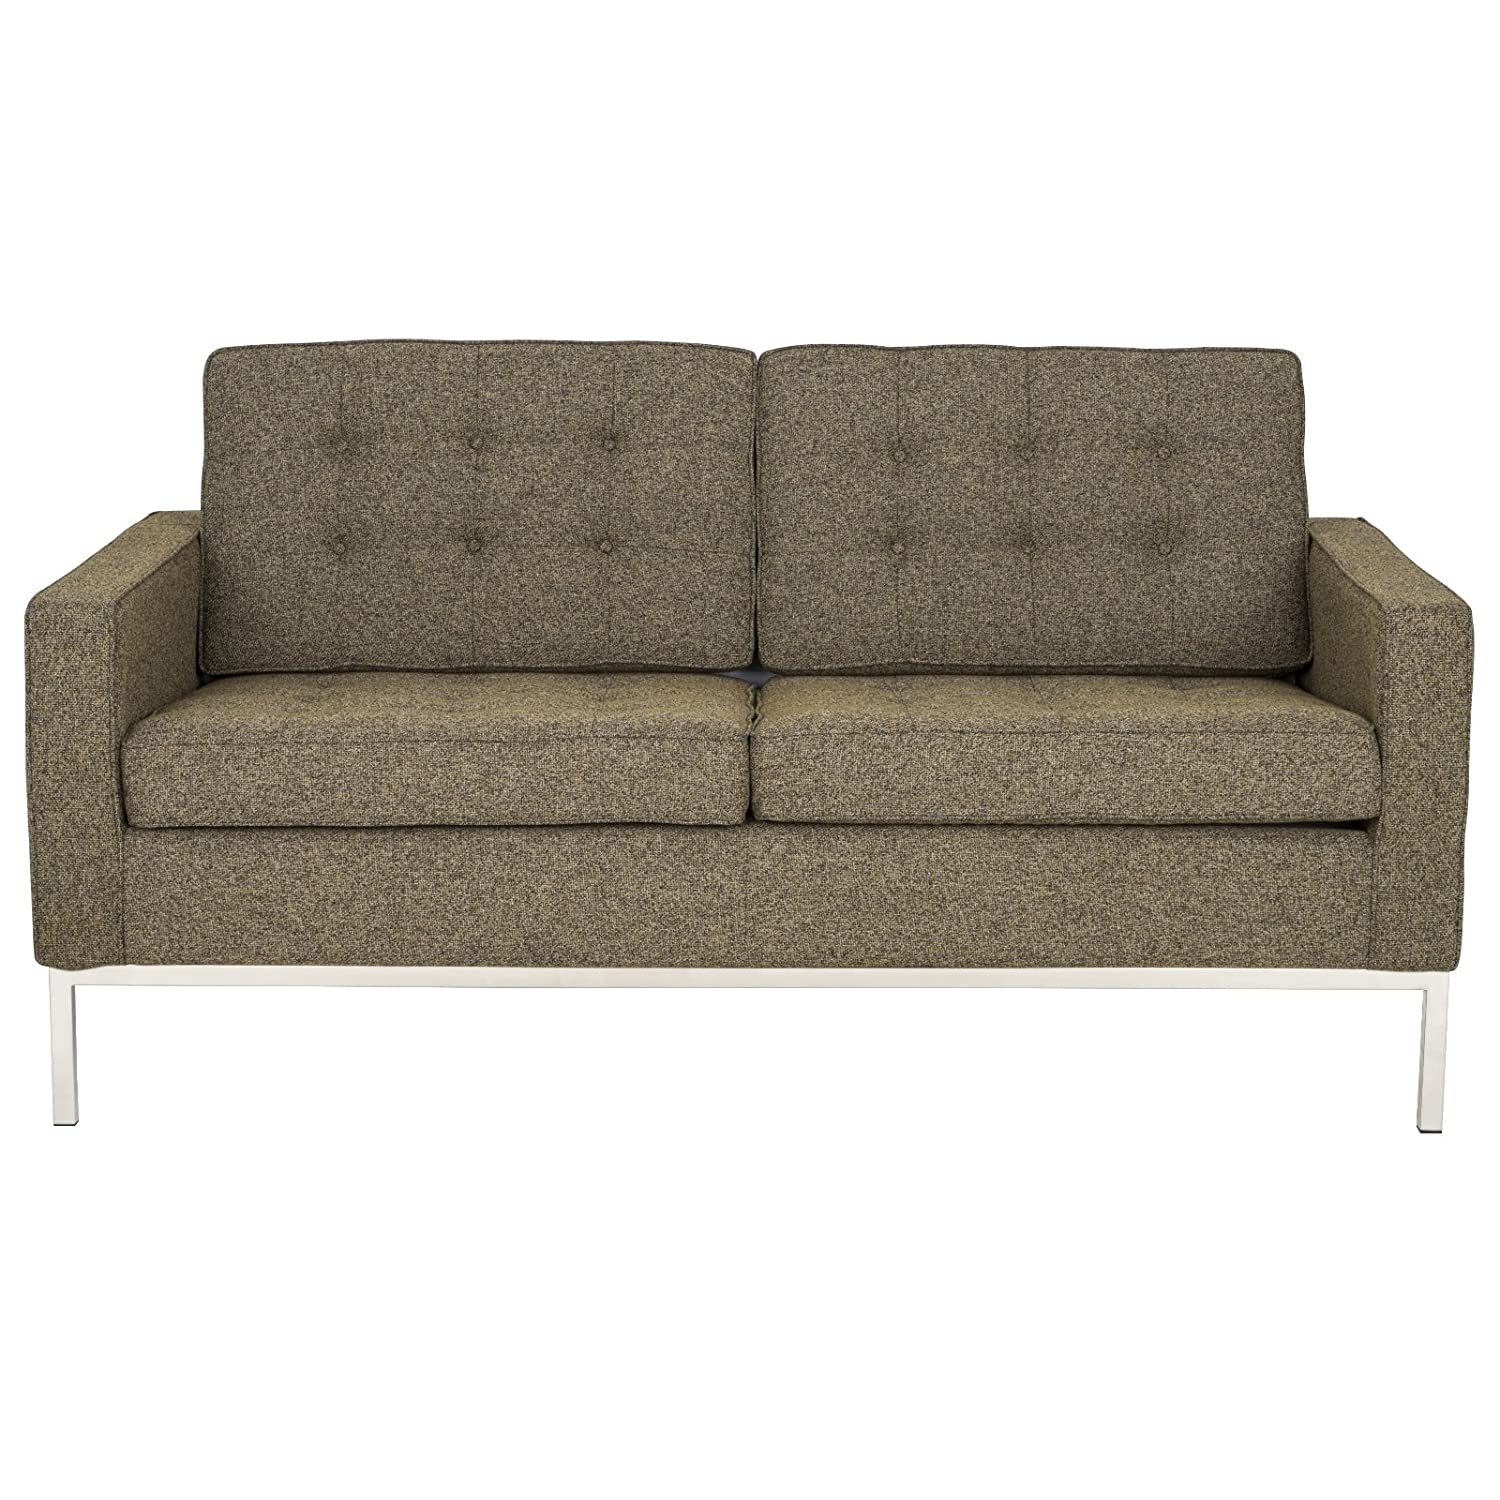 LeisureMod® Modern Florence Style Fabric Loveseat Sofa in Oatmeal Twill Wool